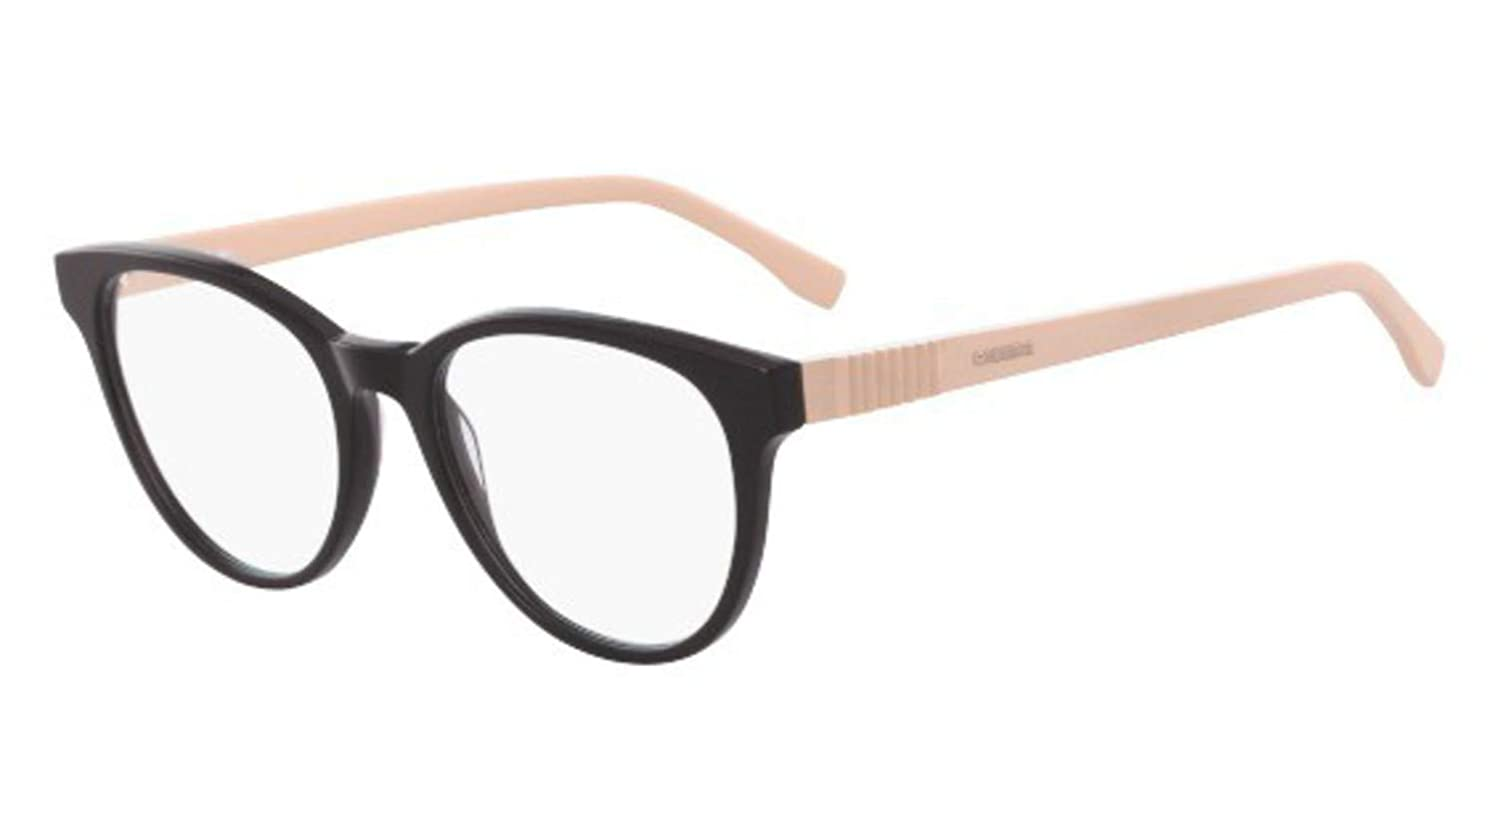 0ce6092d2bf Eyeglasses LACOSTE L 2834 001 BLACK at Amazon Men s Clothing store